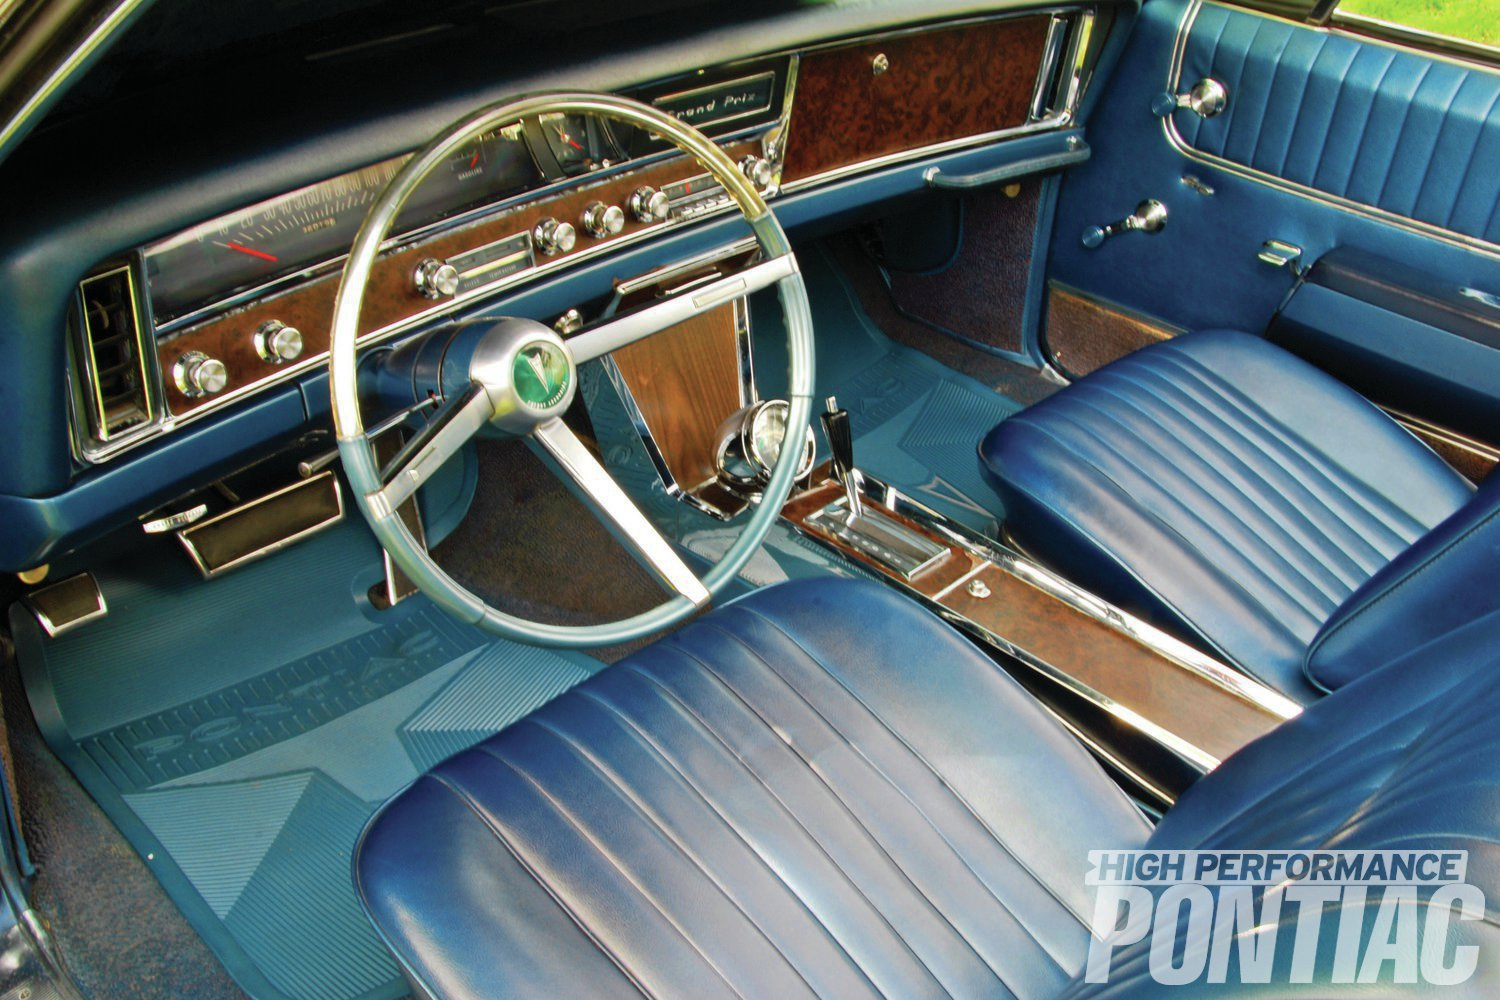 This is the original born-with interior. Only the floor mats are reproductions.